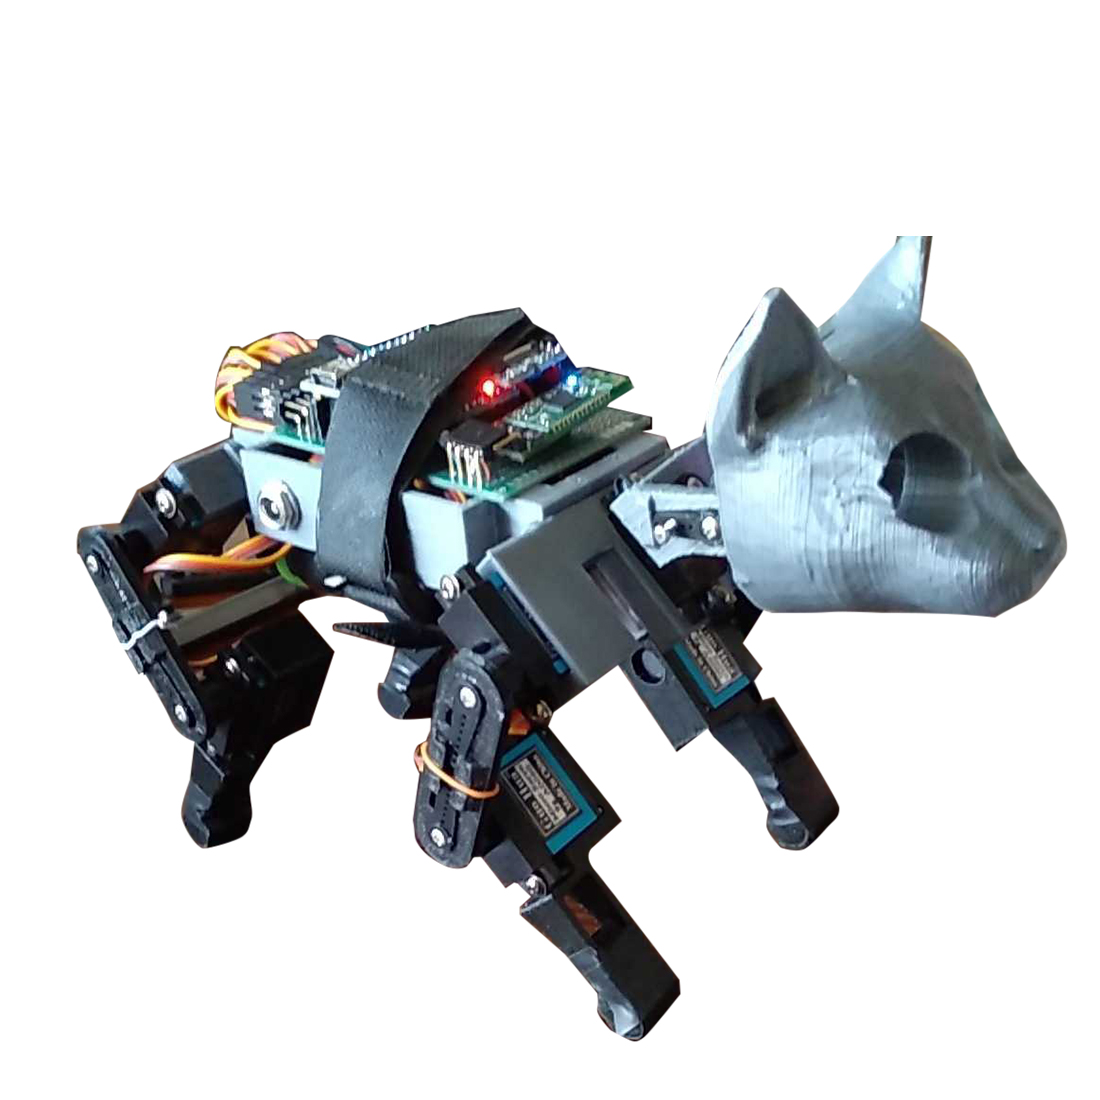 Programmable Mechanical Dog 11DOF Bionic Quadruped Crawling Robot Toy Brain-Training Toy For Children Kids Educational Toys Gift